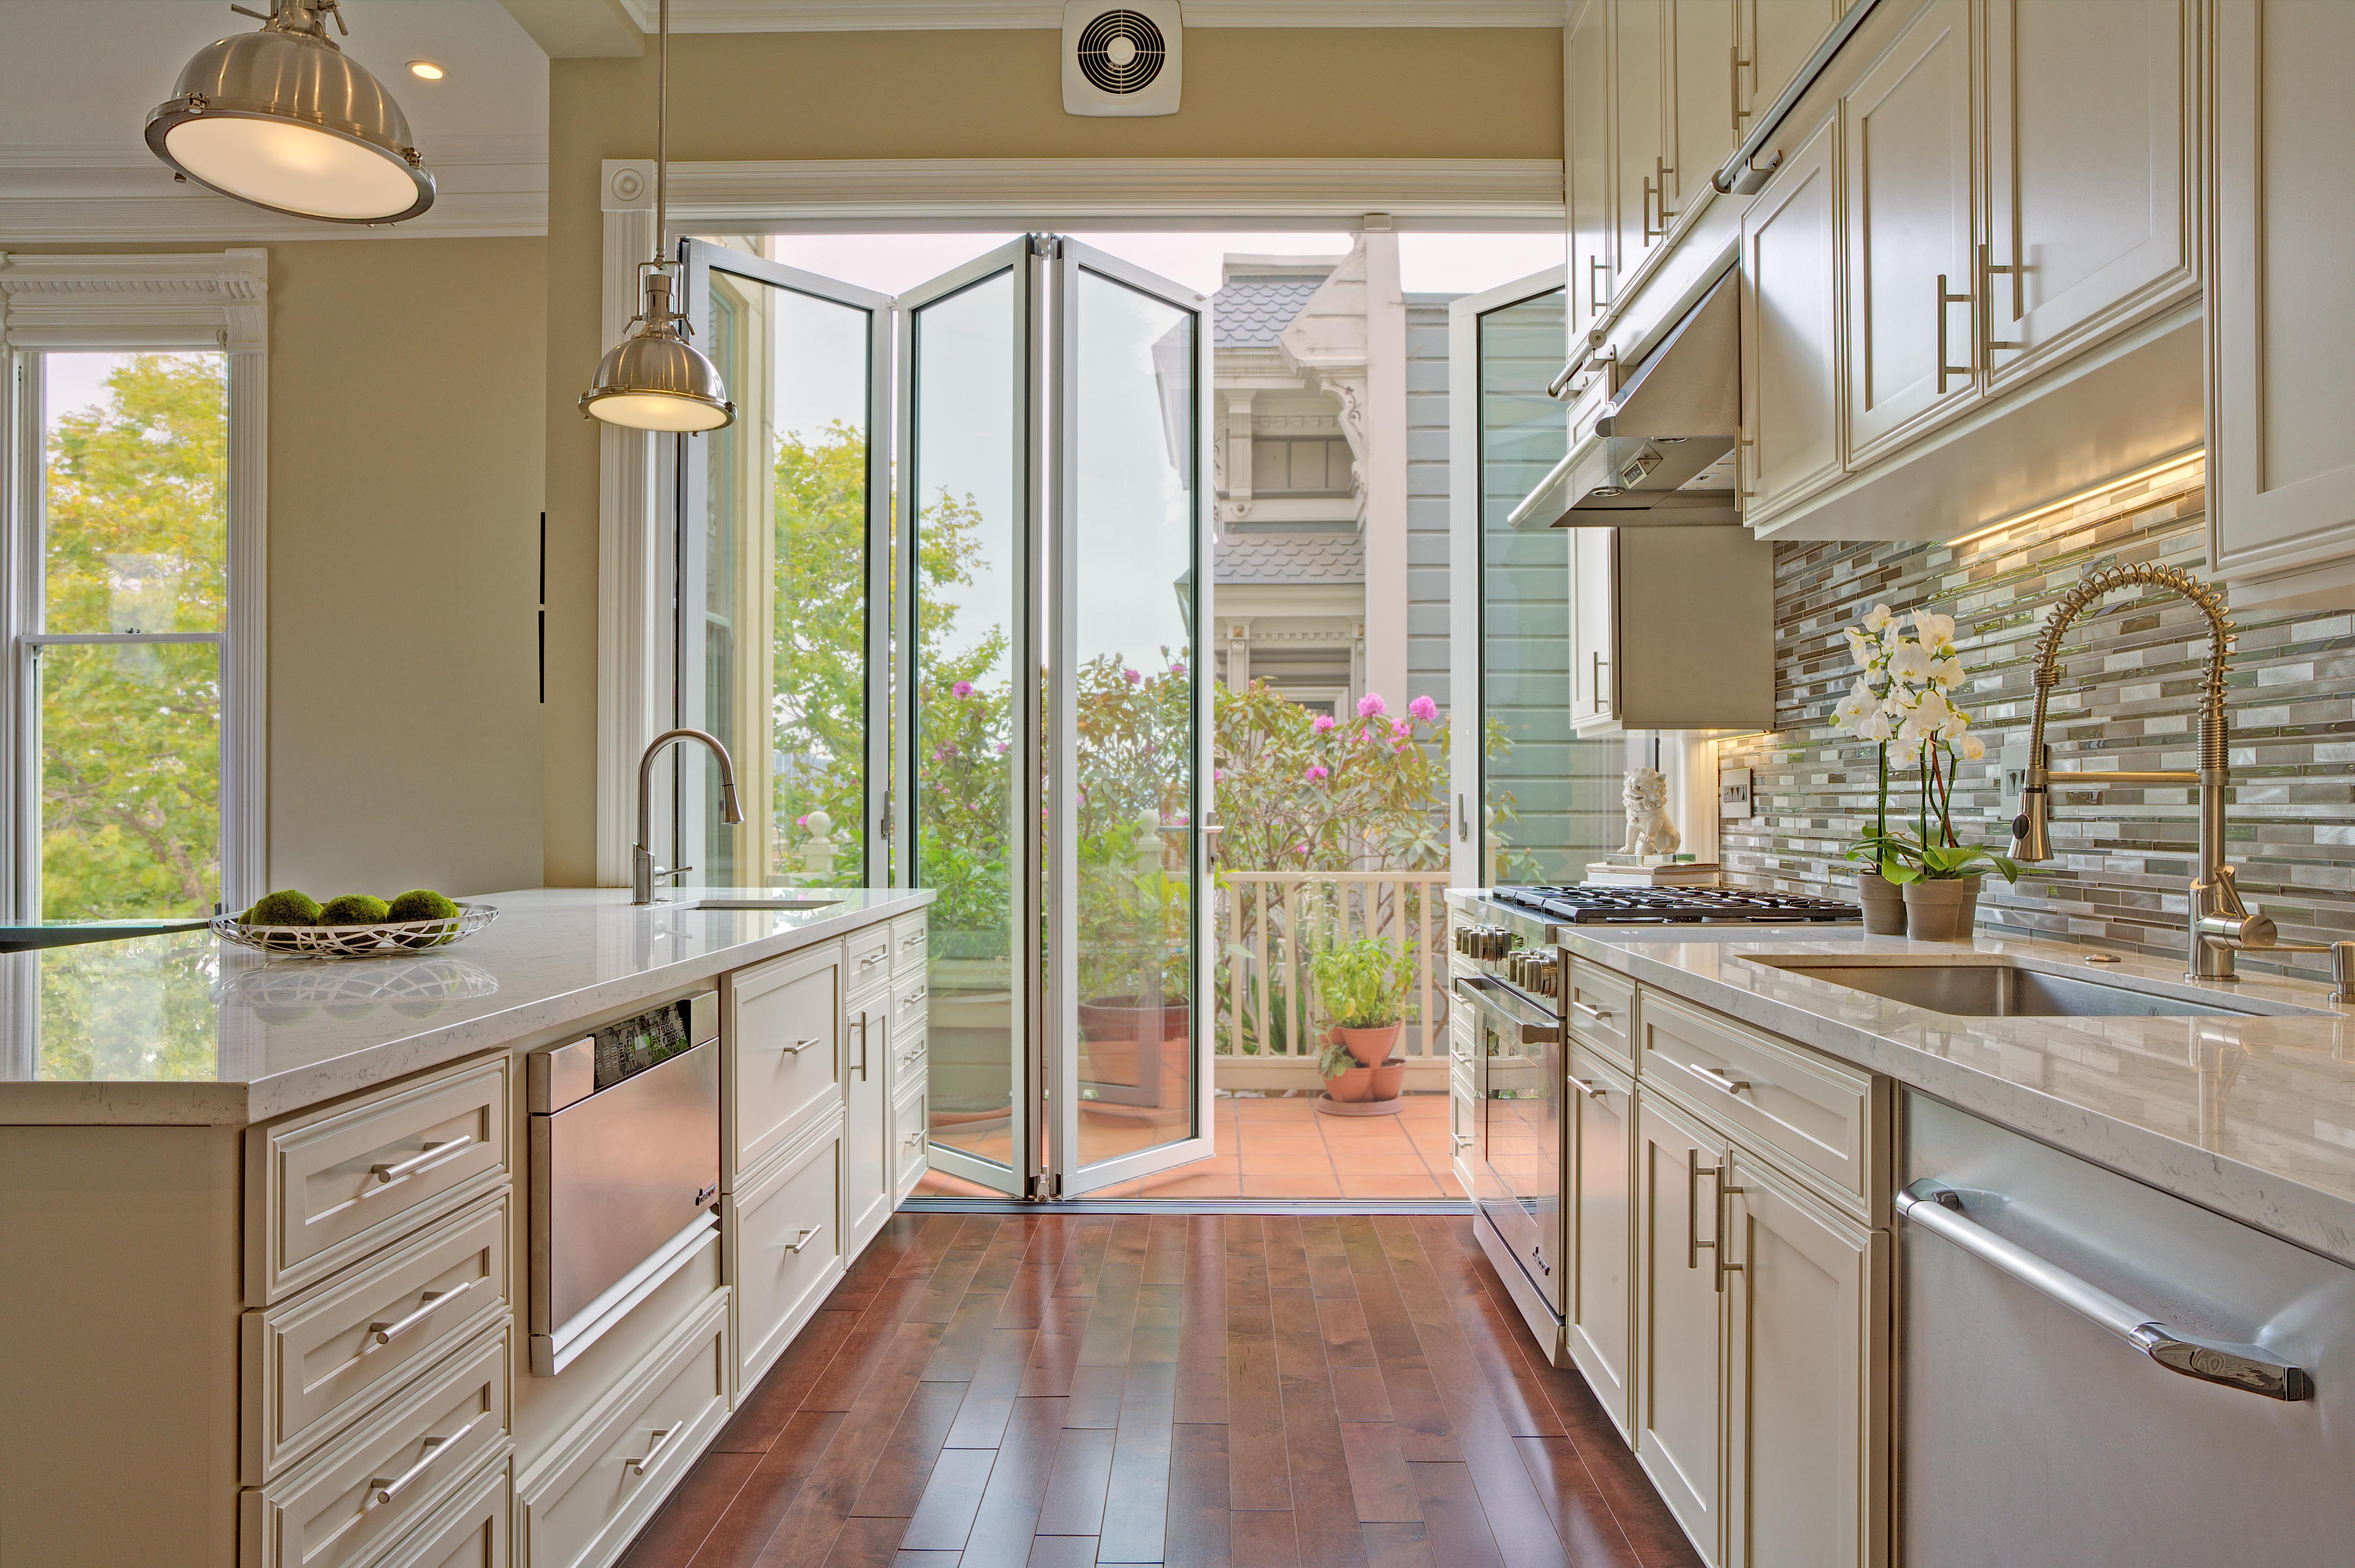 Kitchen Remodeling Trends: Maximizing the Centerpiece of the Home ...